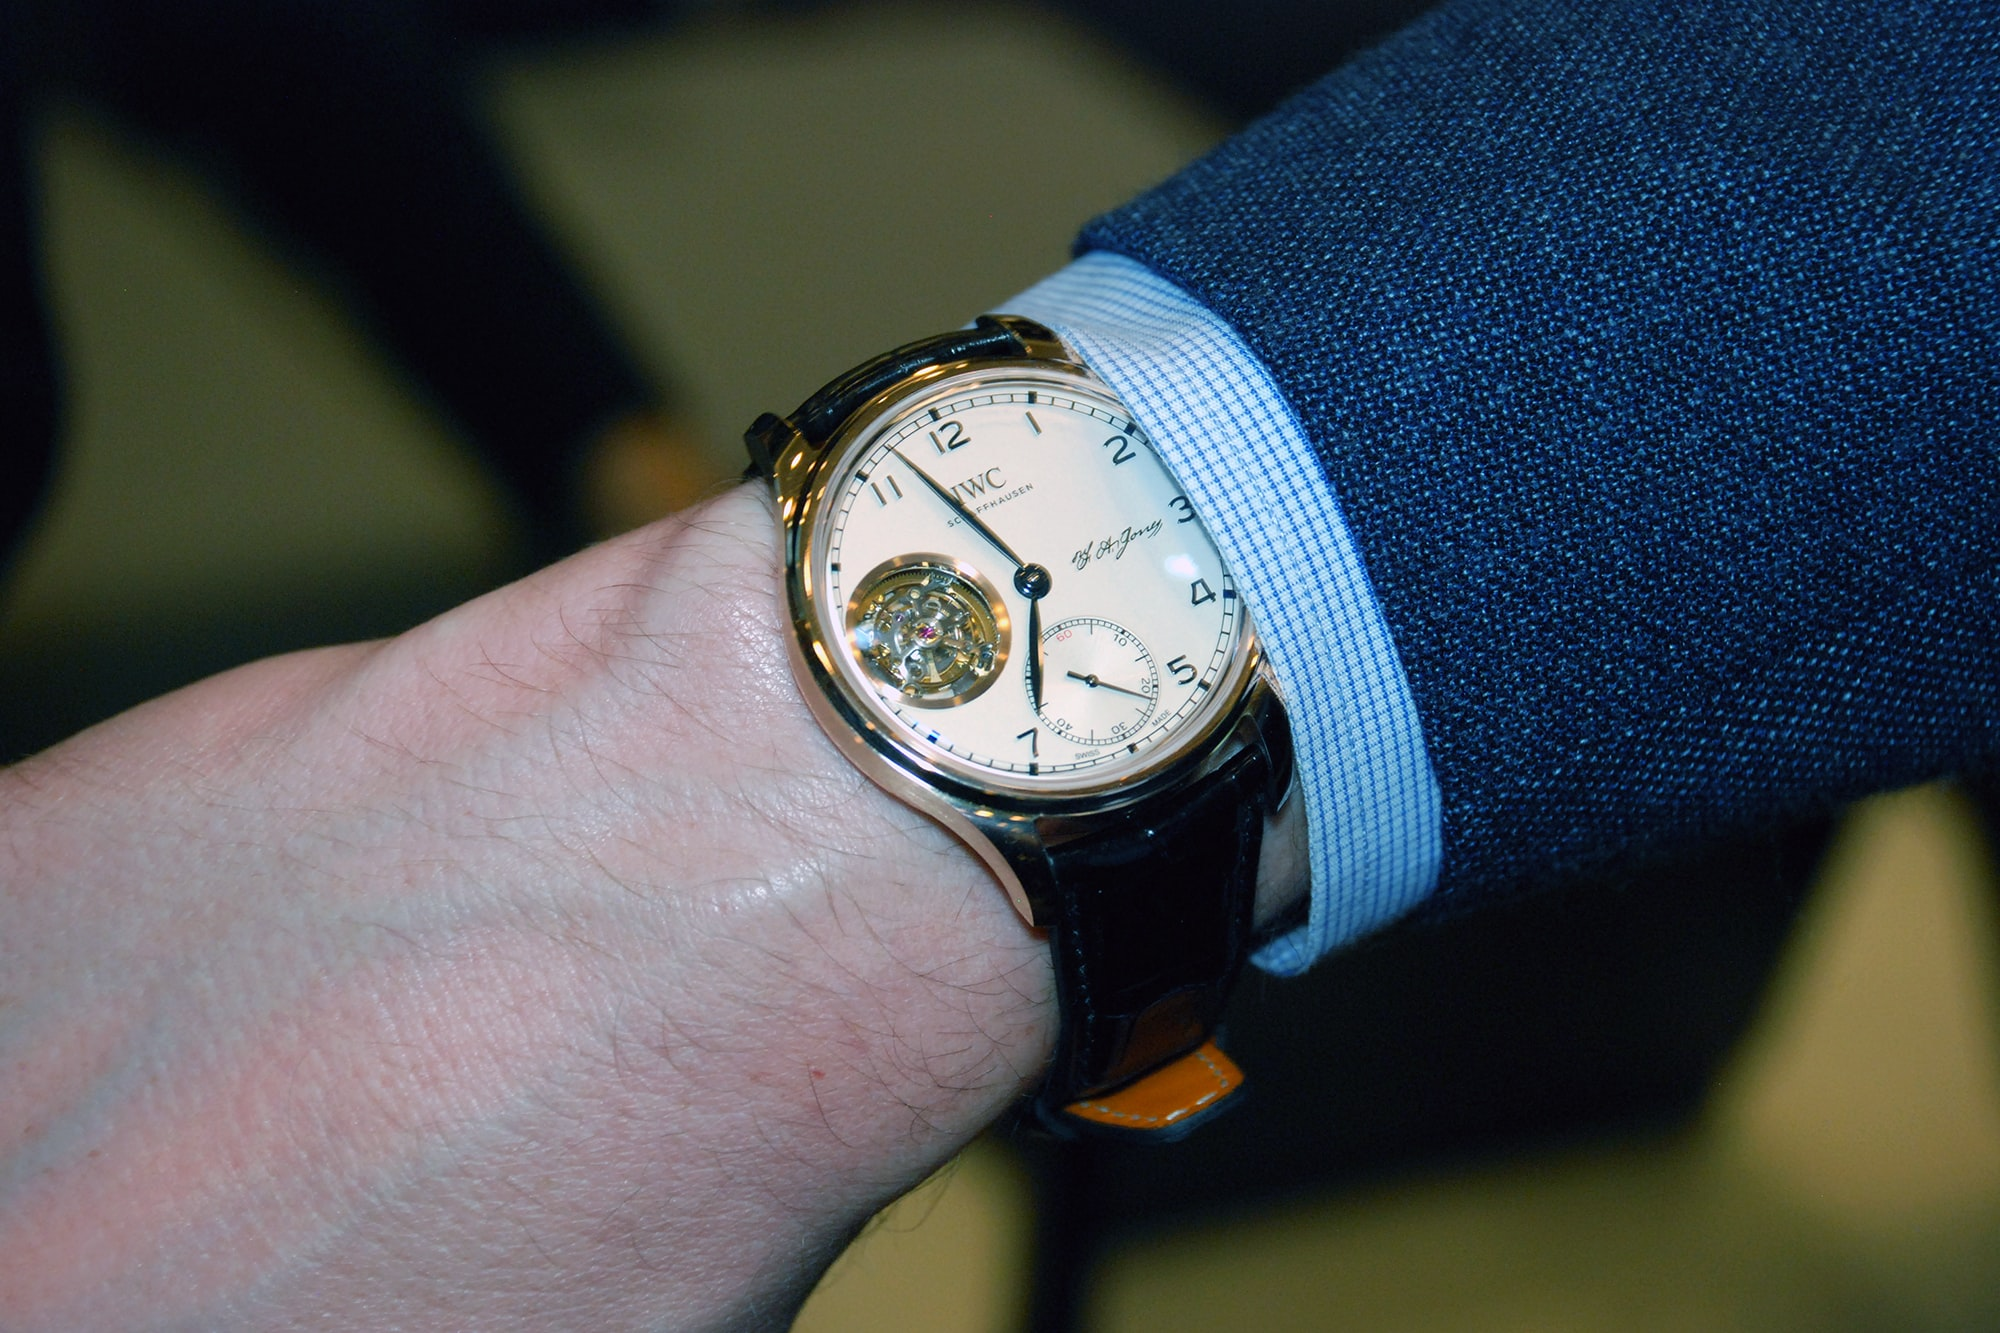 Photo Report: HODINKEE And IWC Celebrate The Portugieser Hand-Wound Tourbillion Edition 'D.H. Craig USA' In New York Photo Report: HODINKEE And IWC Celebrate The Portugieser Hand-Wound Tourbillion Edition 'D.H. Craig USA' In New York 0077 copy